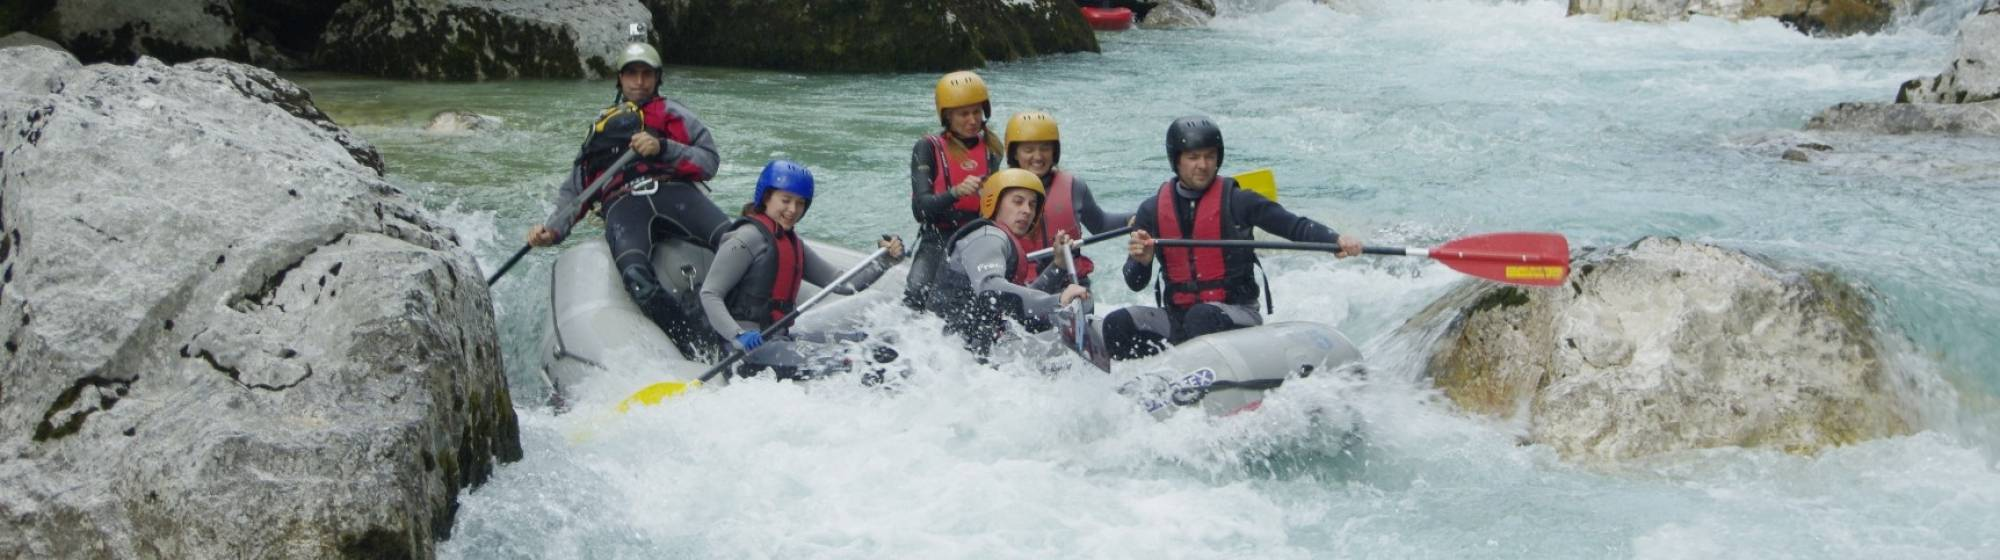 Whitewater Rafting on the Soca River